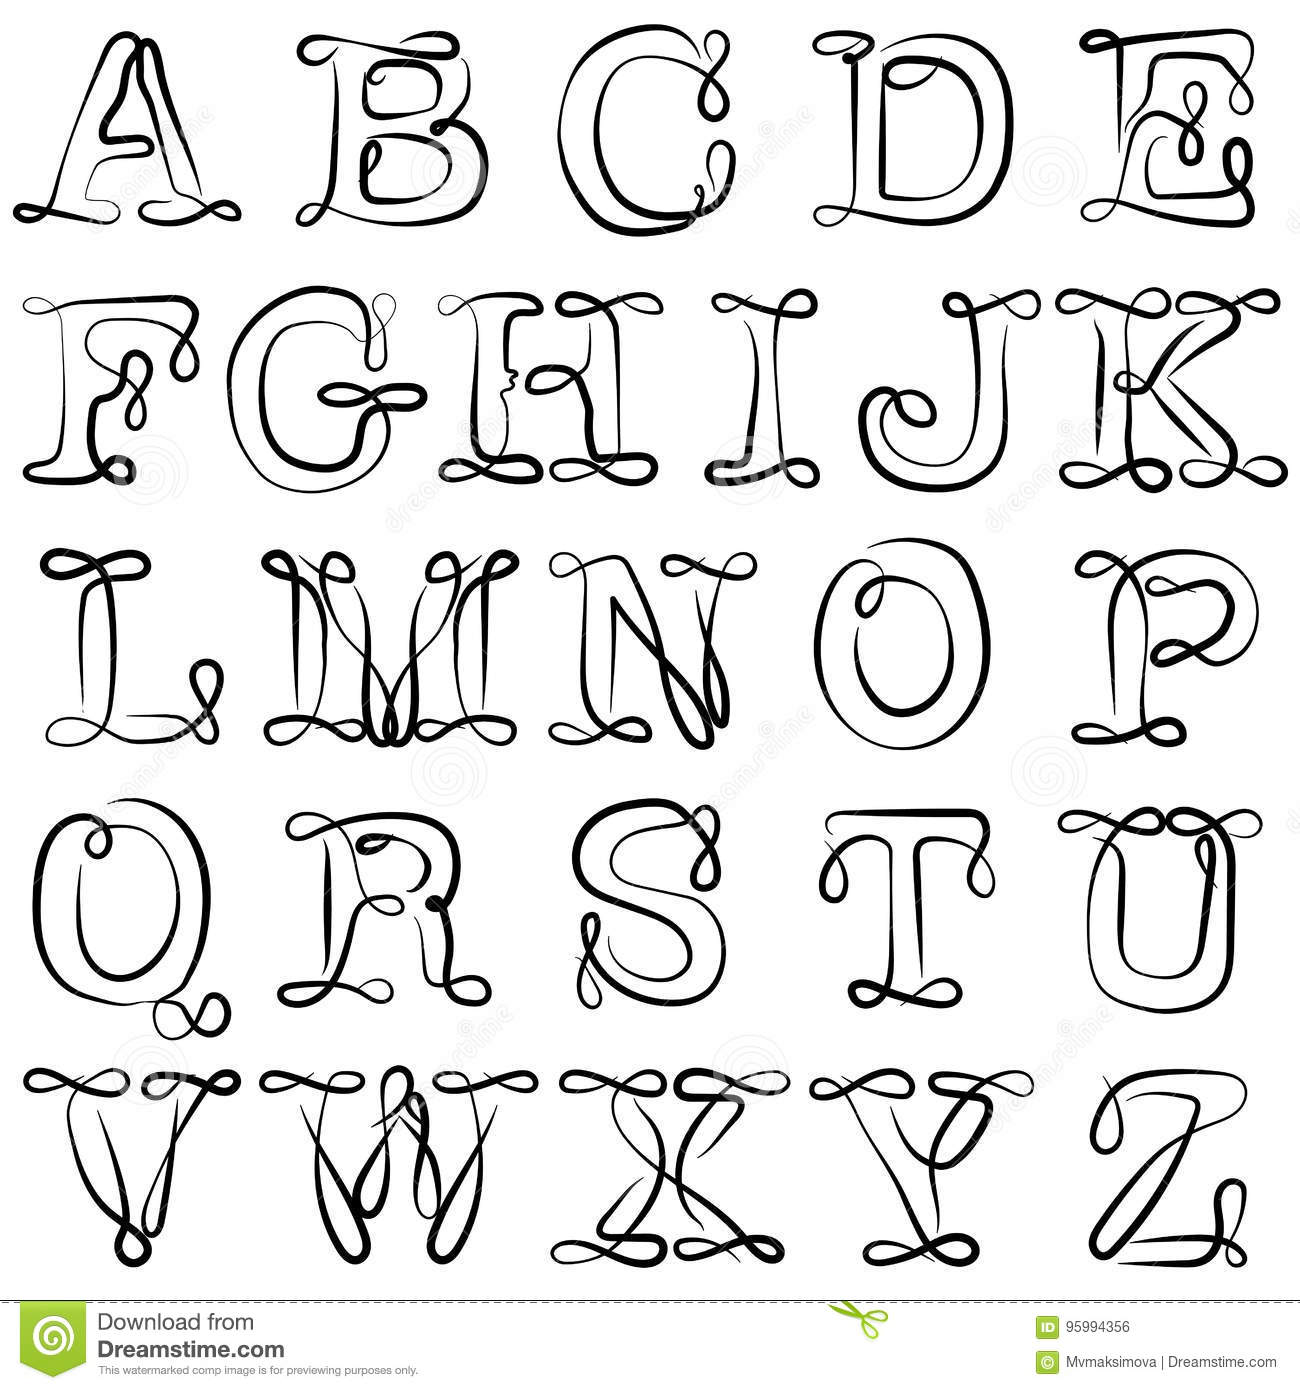 Alphabet Pictures For Each Letter Black And White.English Alphabet Abc English Letters Are Black On White